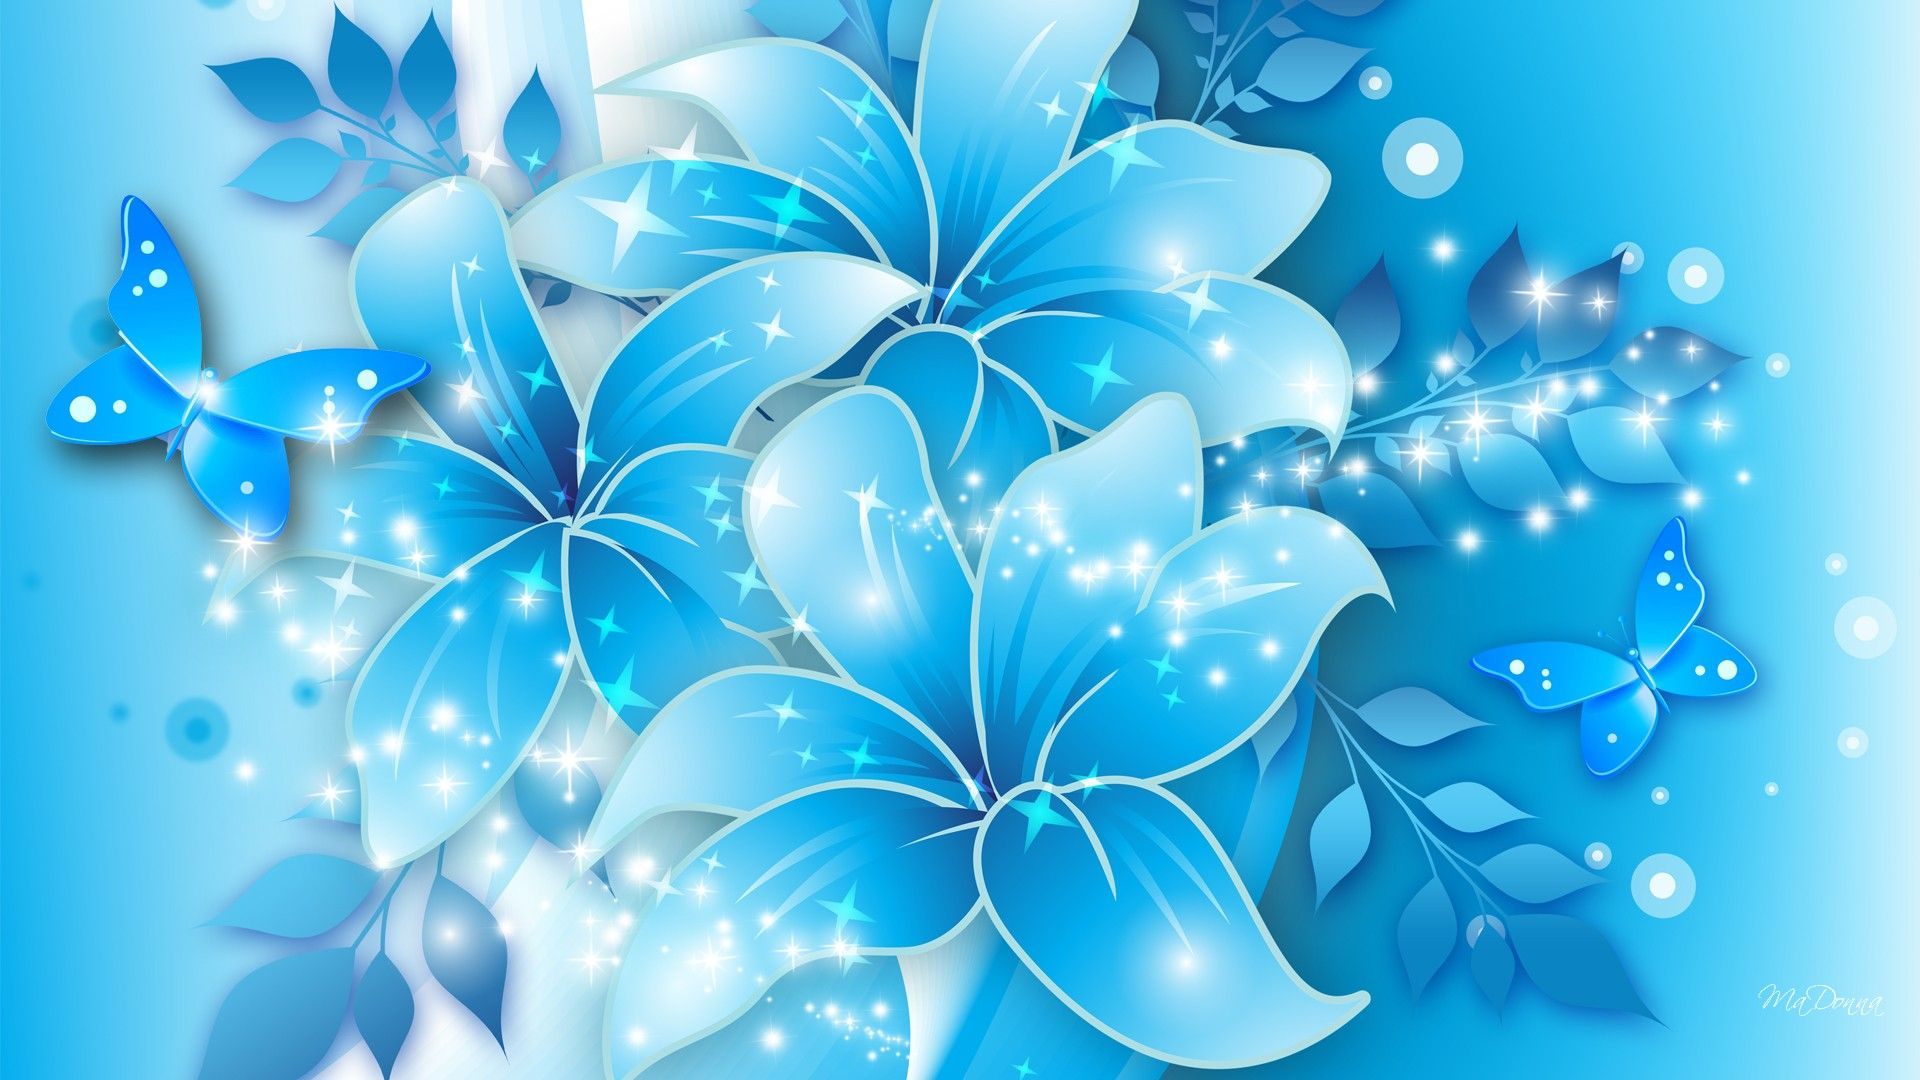 Blue Floral Design Background Google Search Blue Flower Wallpaper Blue Flowers Background Blue Background Wallpapers